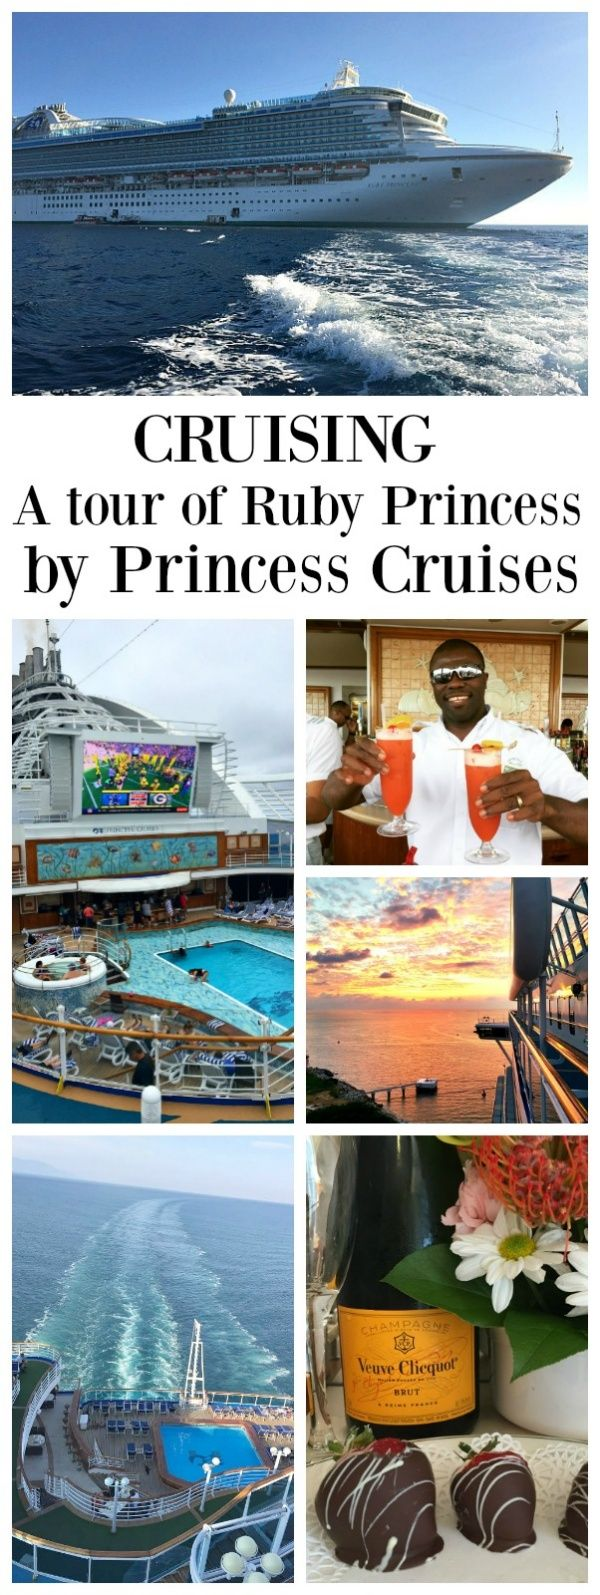 Tour of Ruby Princess ship | RecipeGirl.com